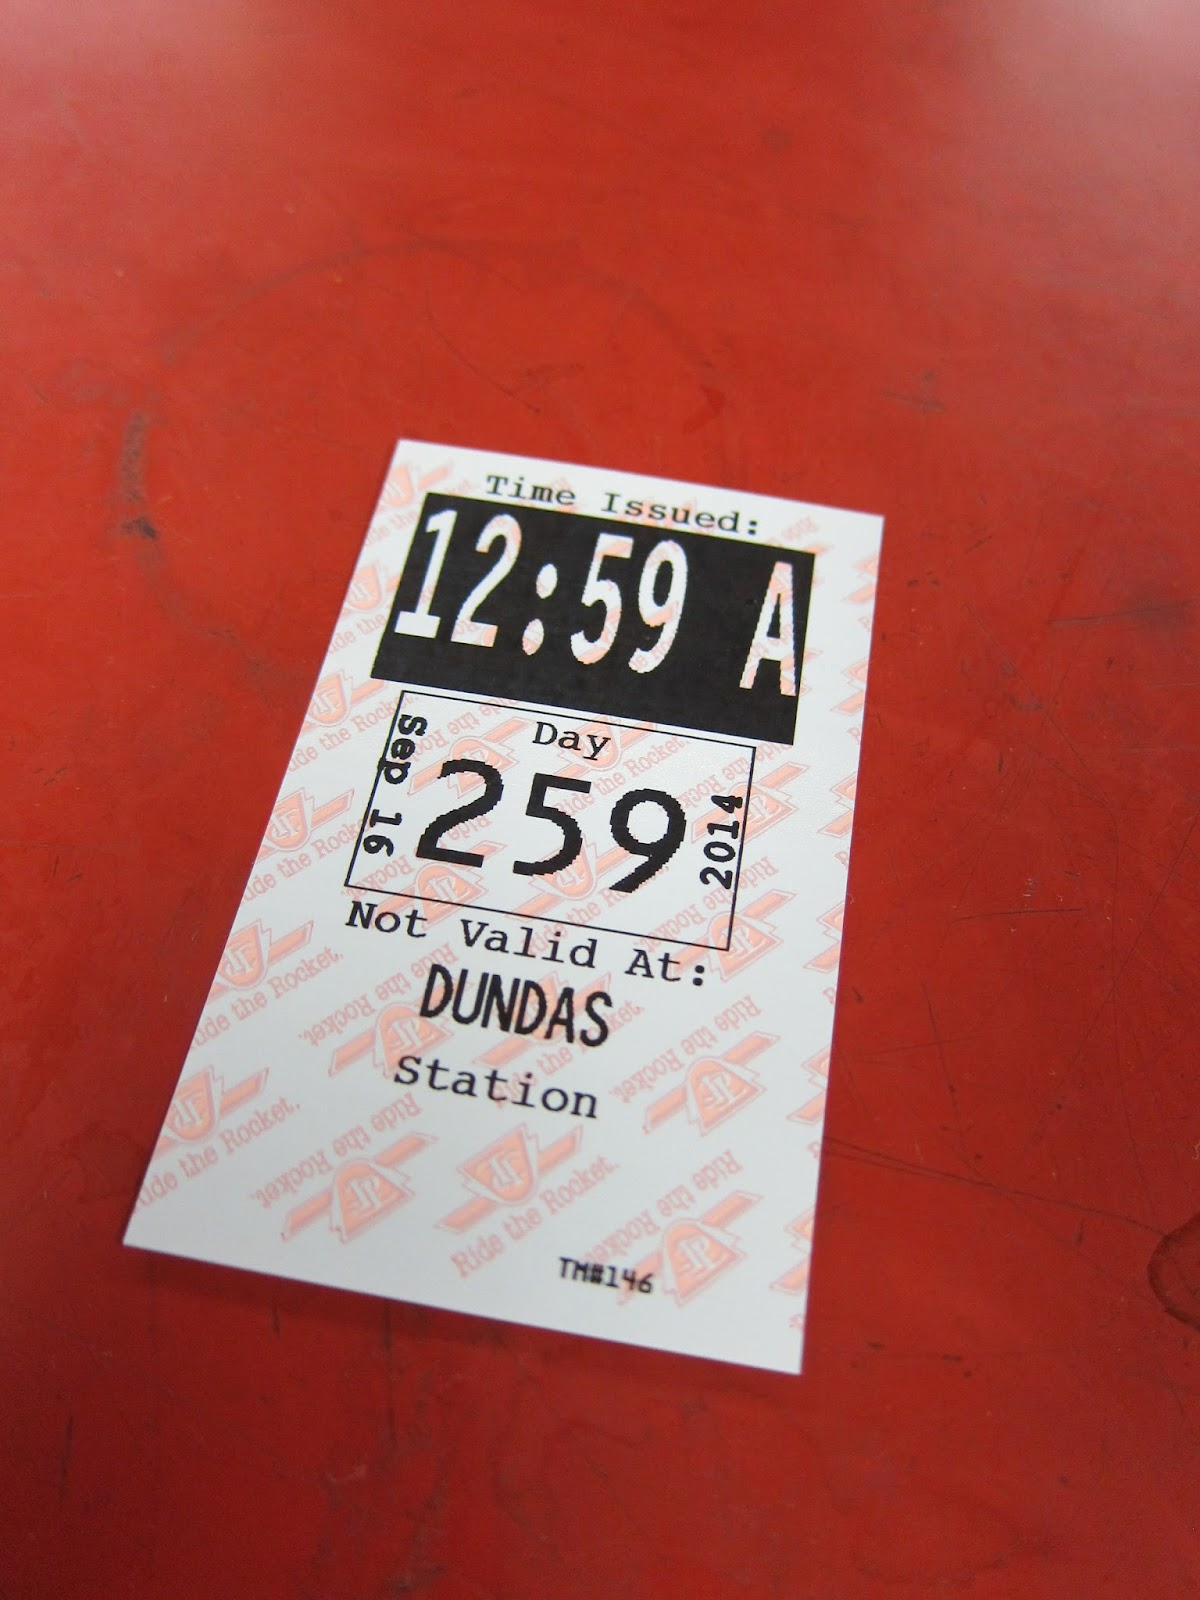 Dundas Station TTC transfer